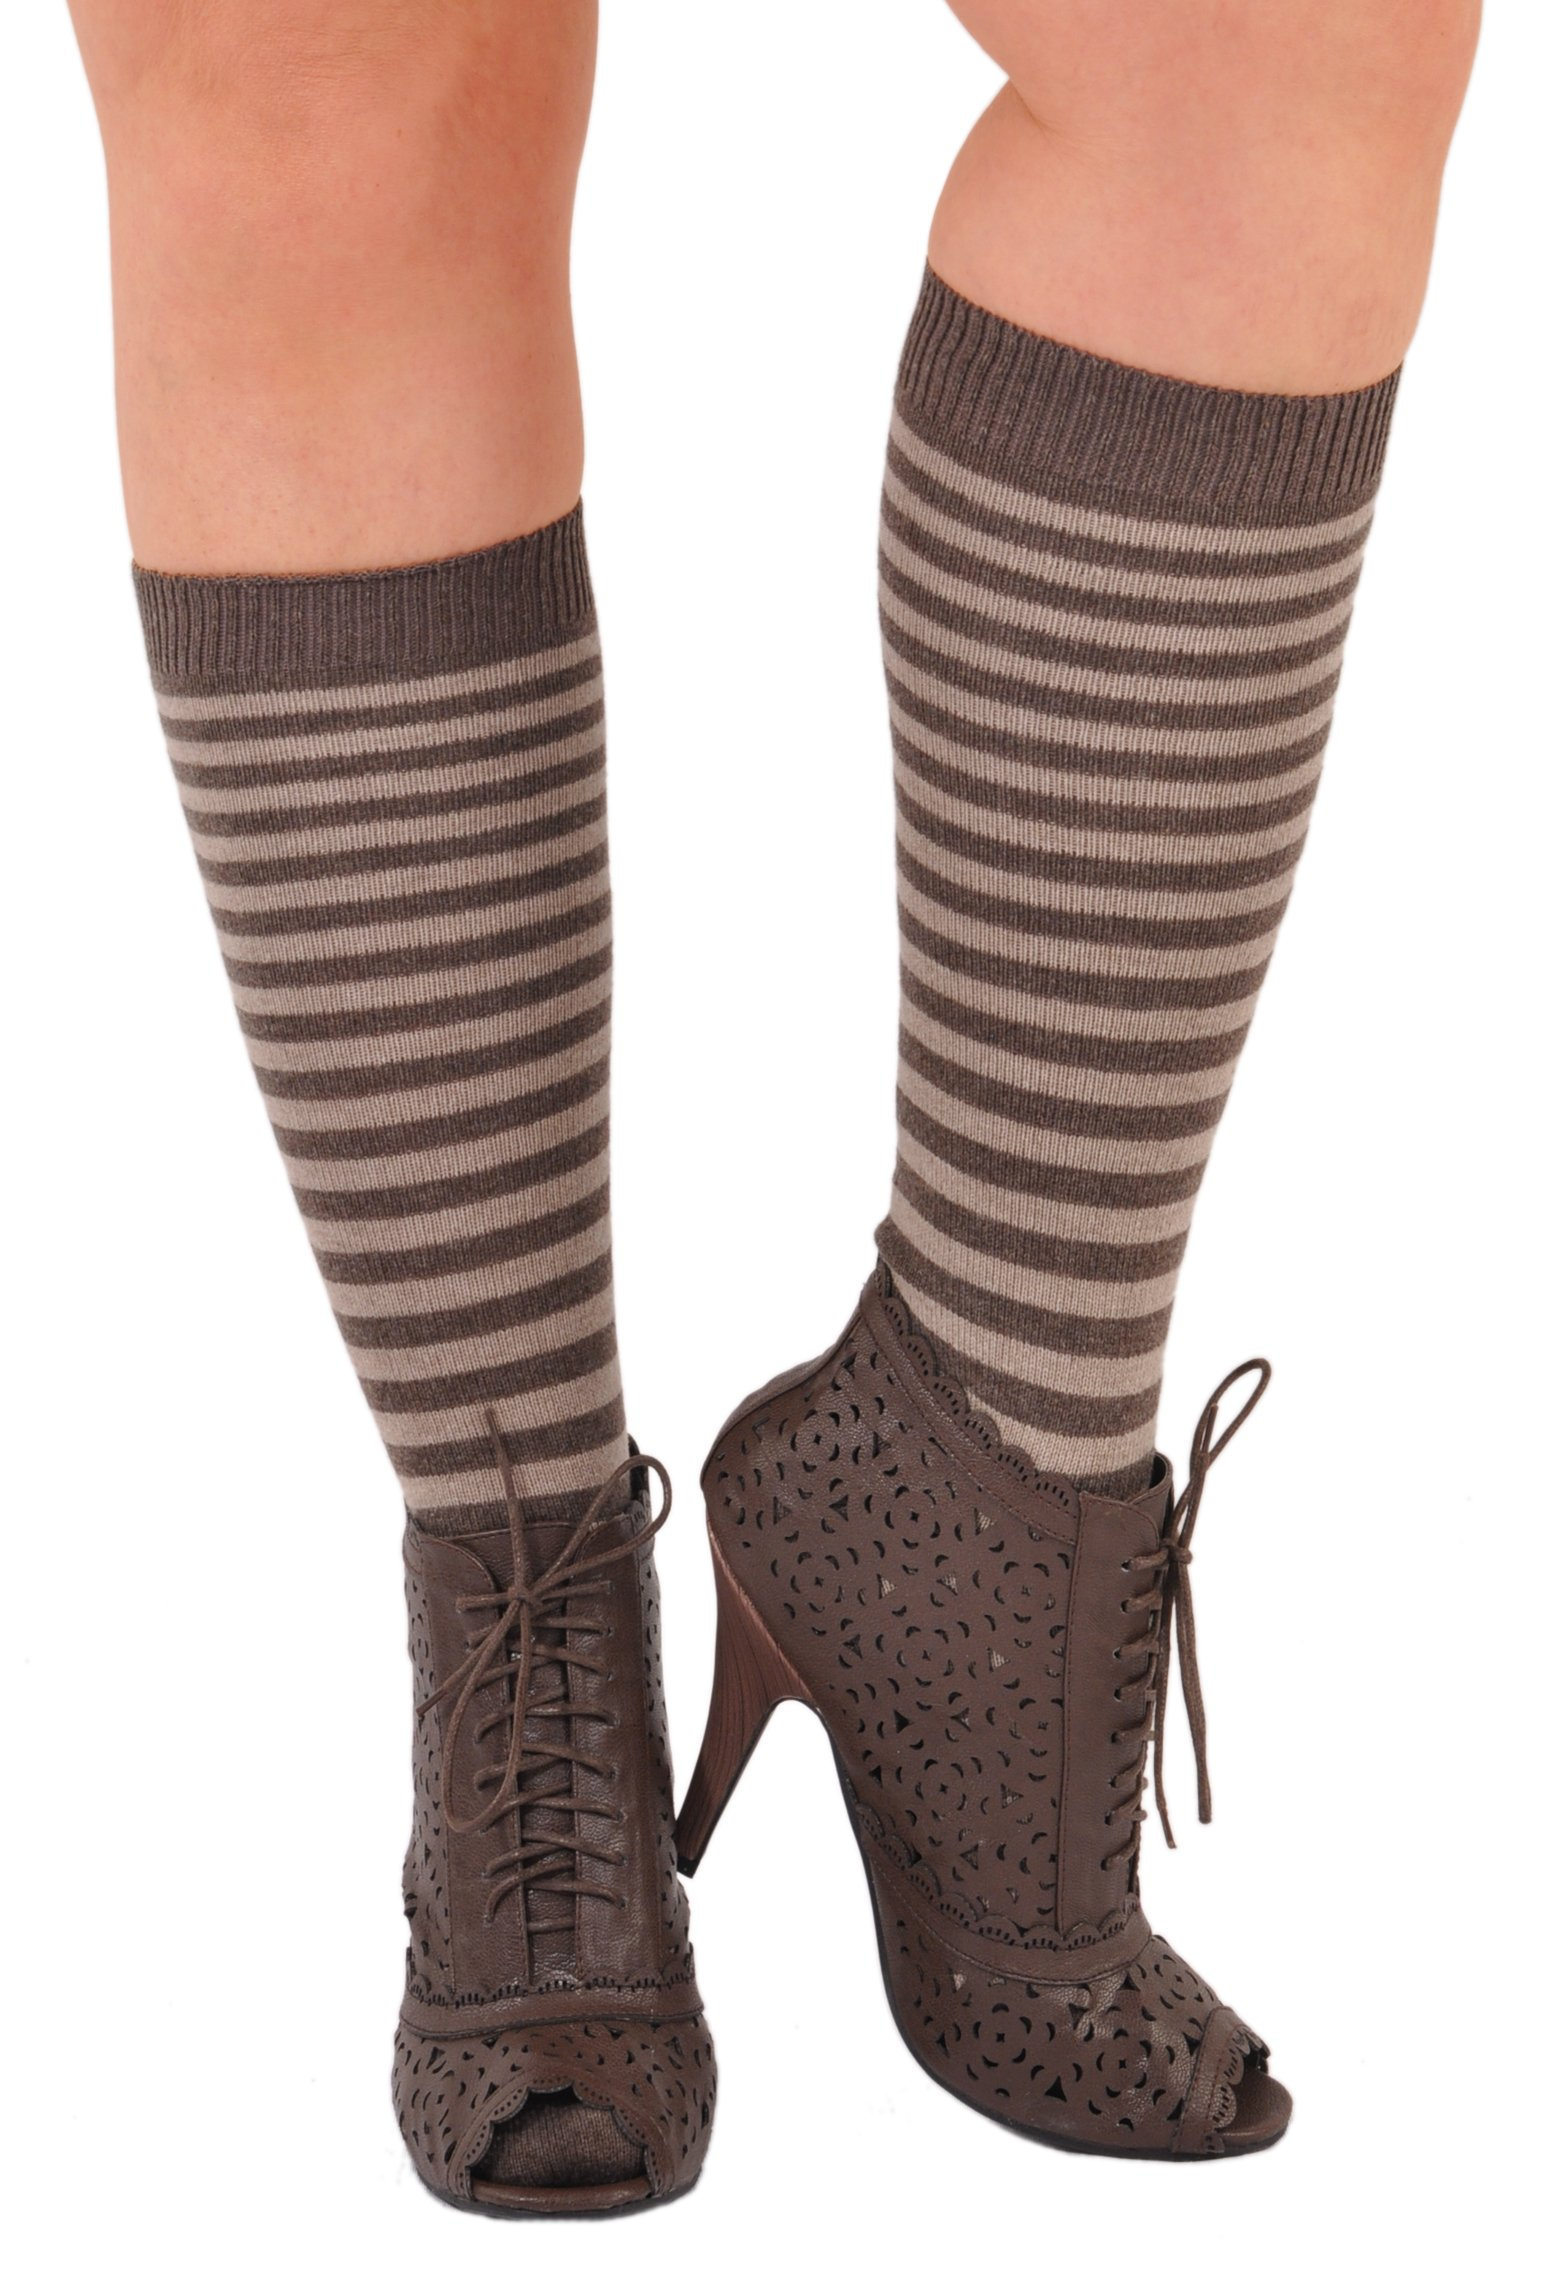 Joelle Kelly Design Pure Cashmere Sizzlin' Hot Stripes Knee-High Socks Natural M/L